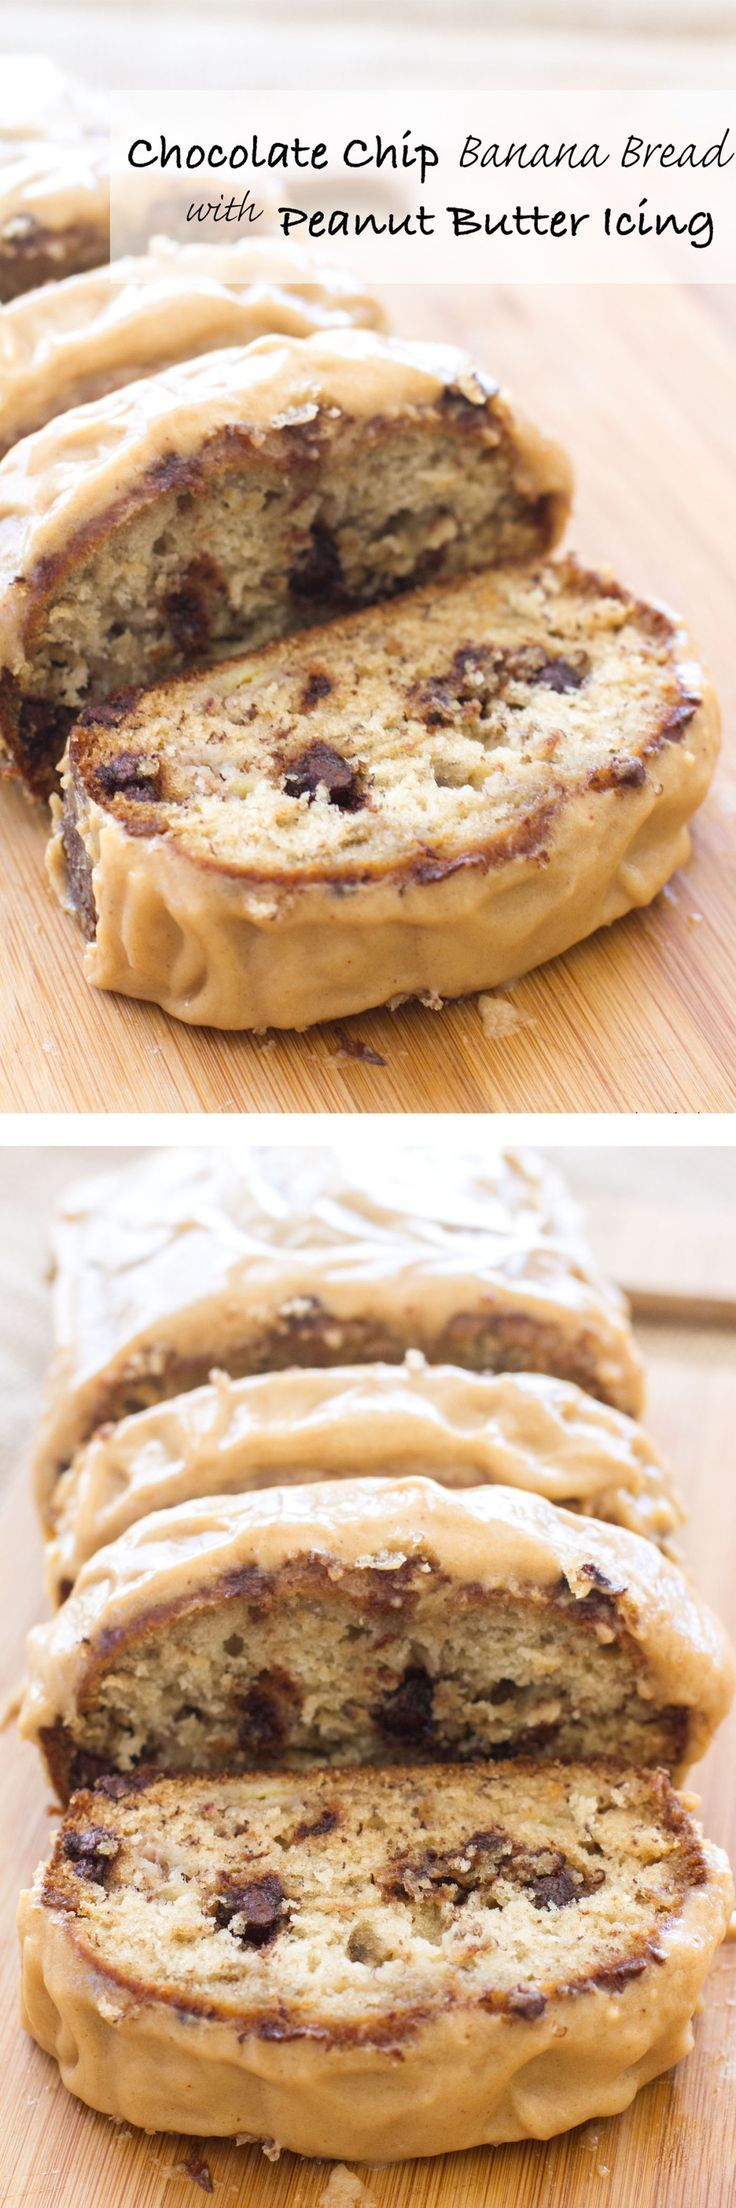 Chocolate Chip Banana Bread with Peanut Butter Icing